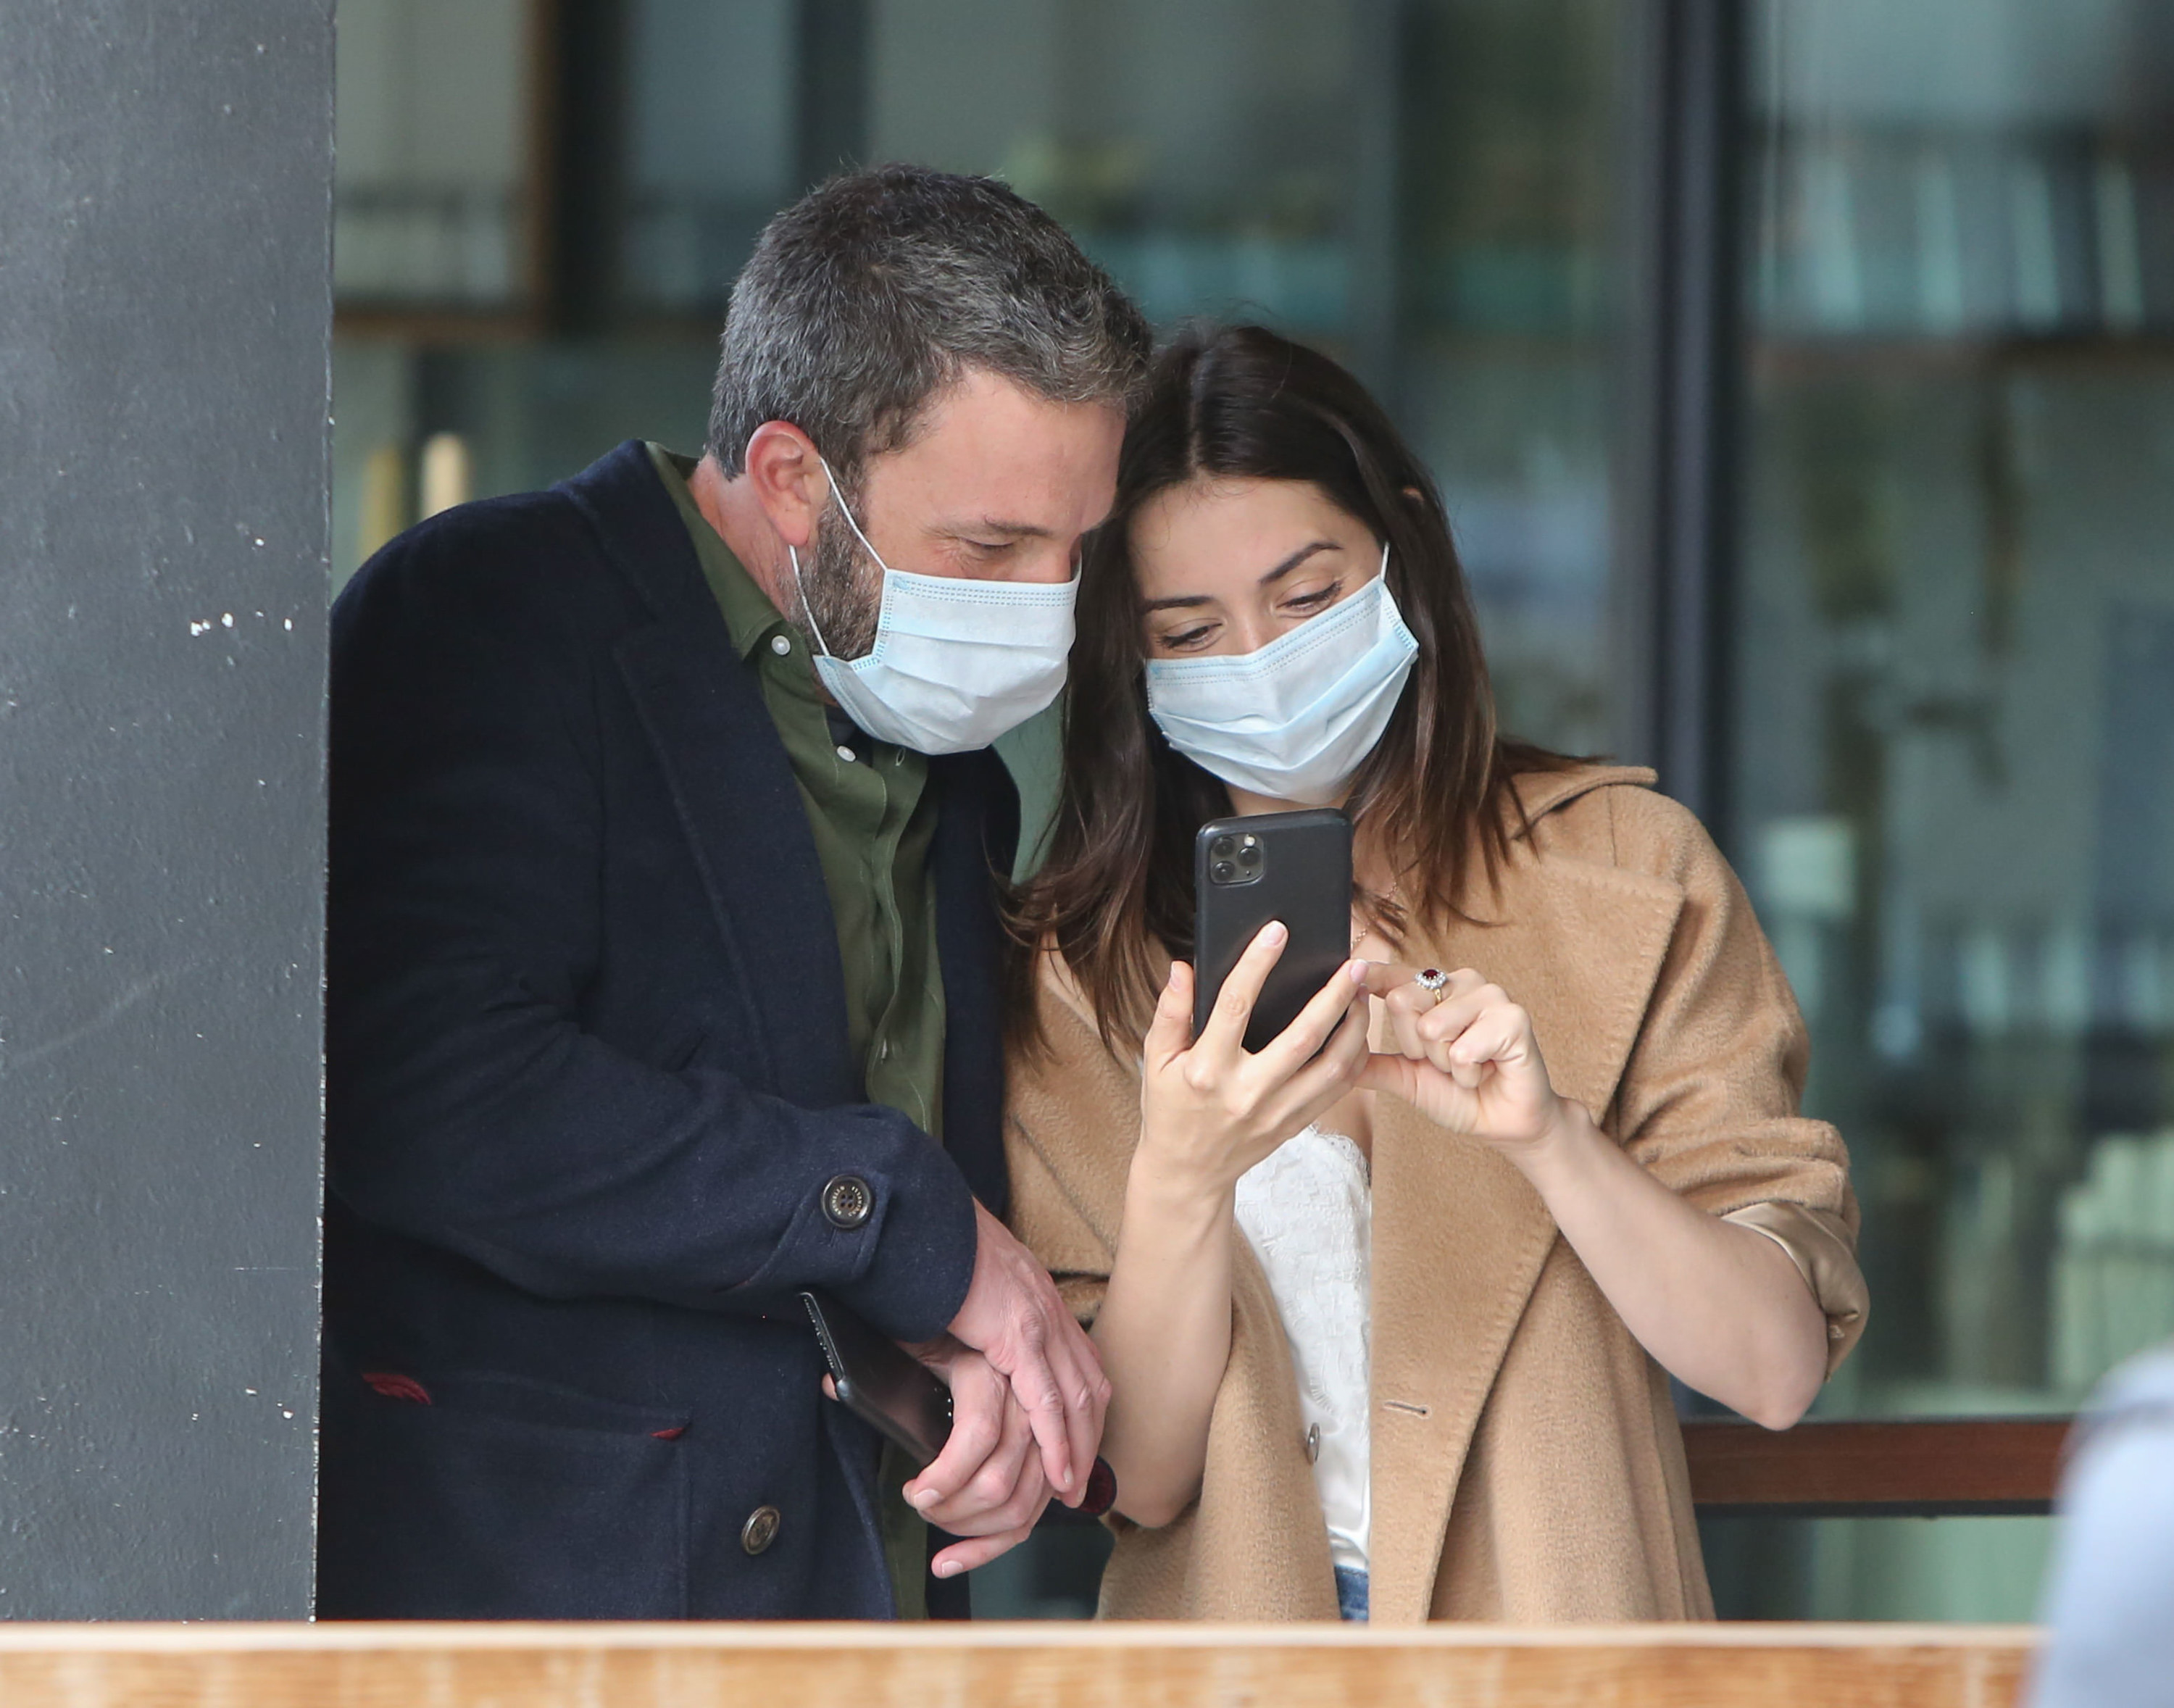 Ben Affleck and Ana de Armas taking pics together while wearing face masks